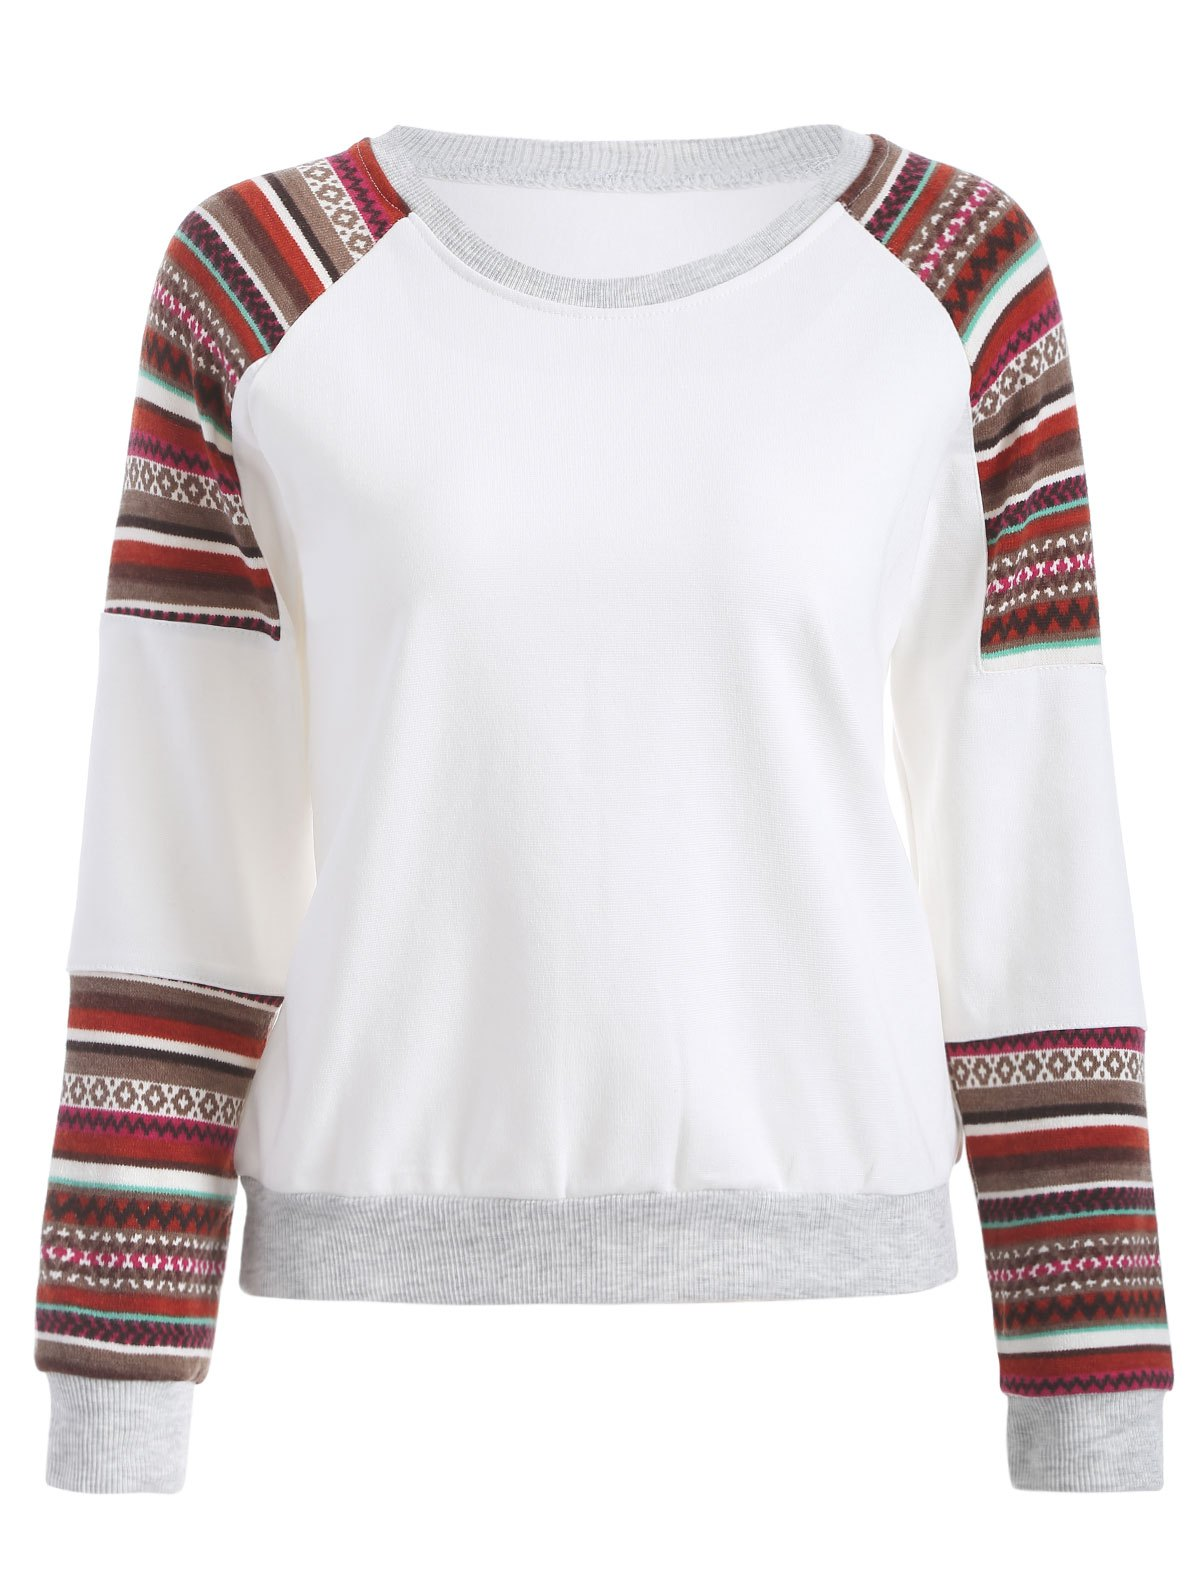 Tribal Print Sleeve Crew Neck Sweatshirt - WHITE M